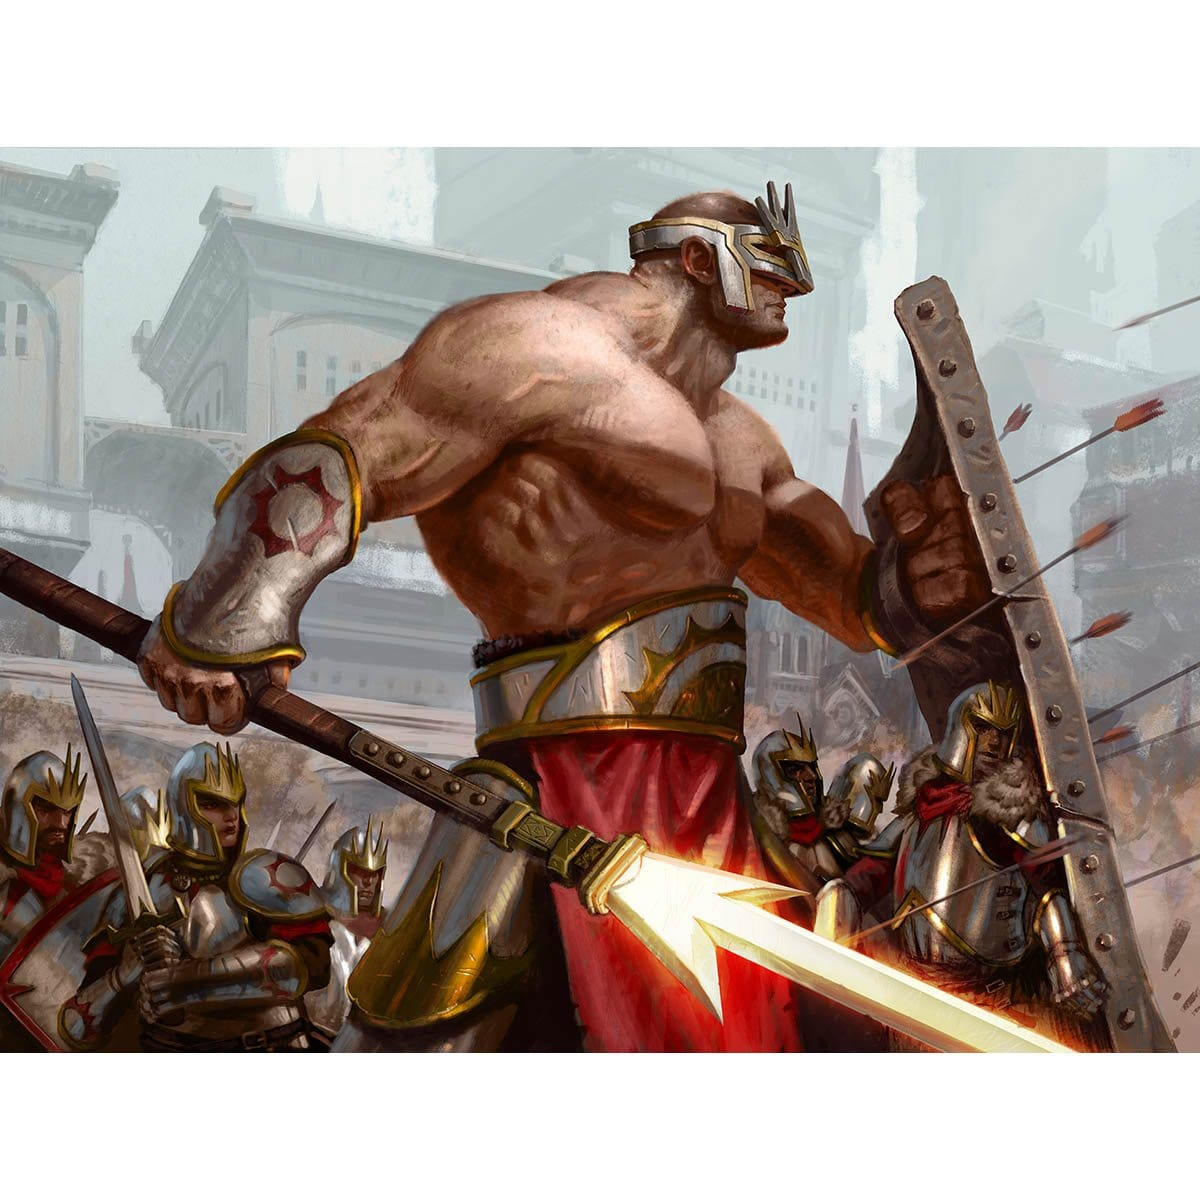 Swathcutter Giant Print - Print - Original Magic Art - Accessories for Magic the Gathering and other card games